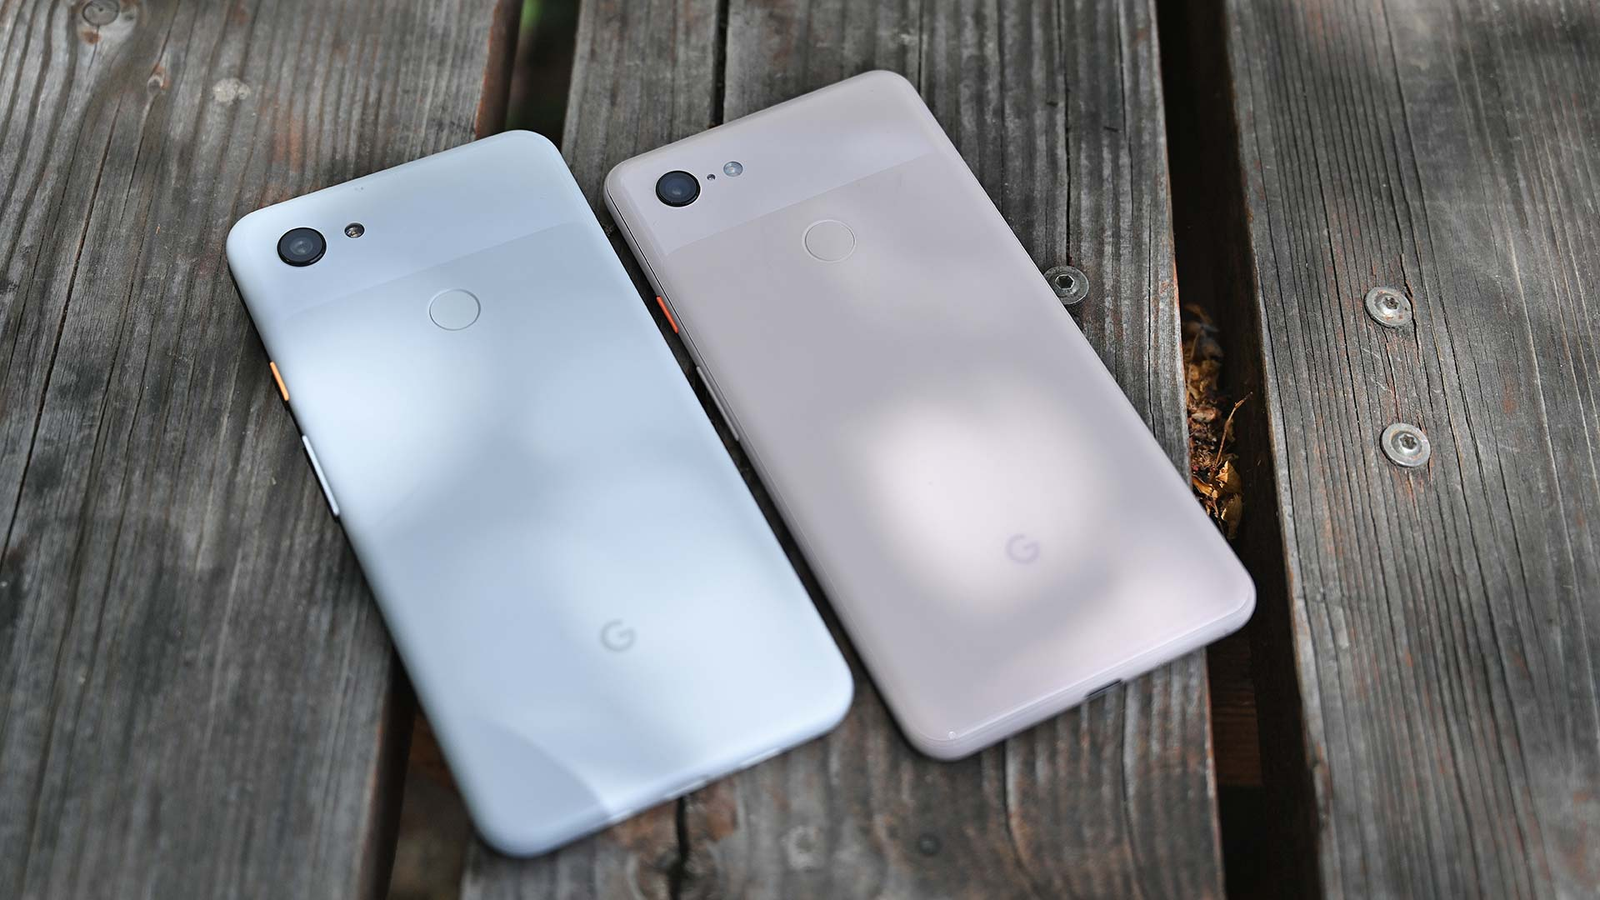 Even though the Pixel 3a has a plastic chassis, it looks and feels almost exactly the same as a regular Pixel 3.